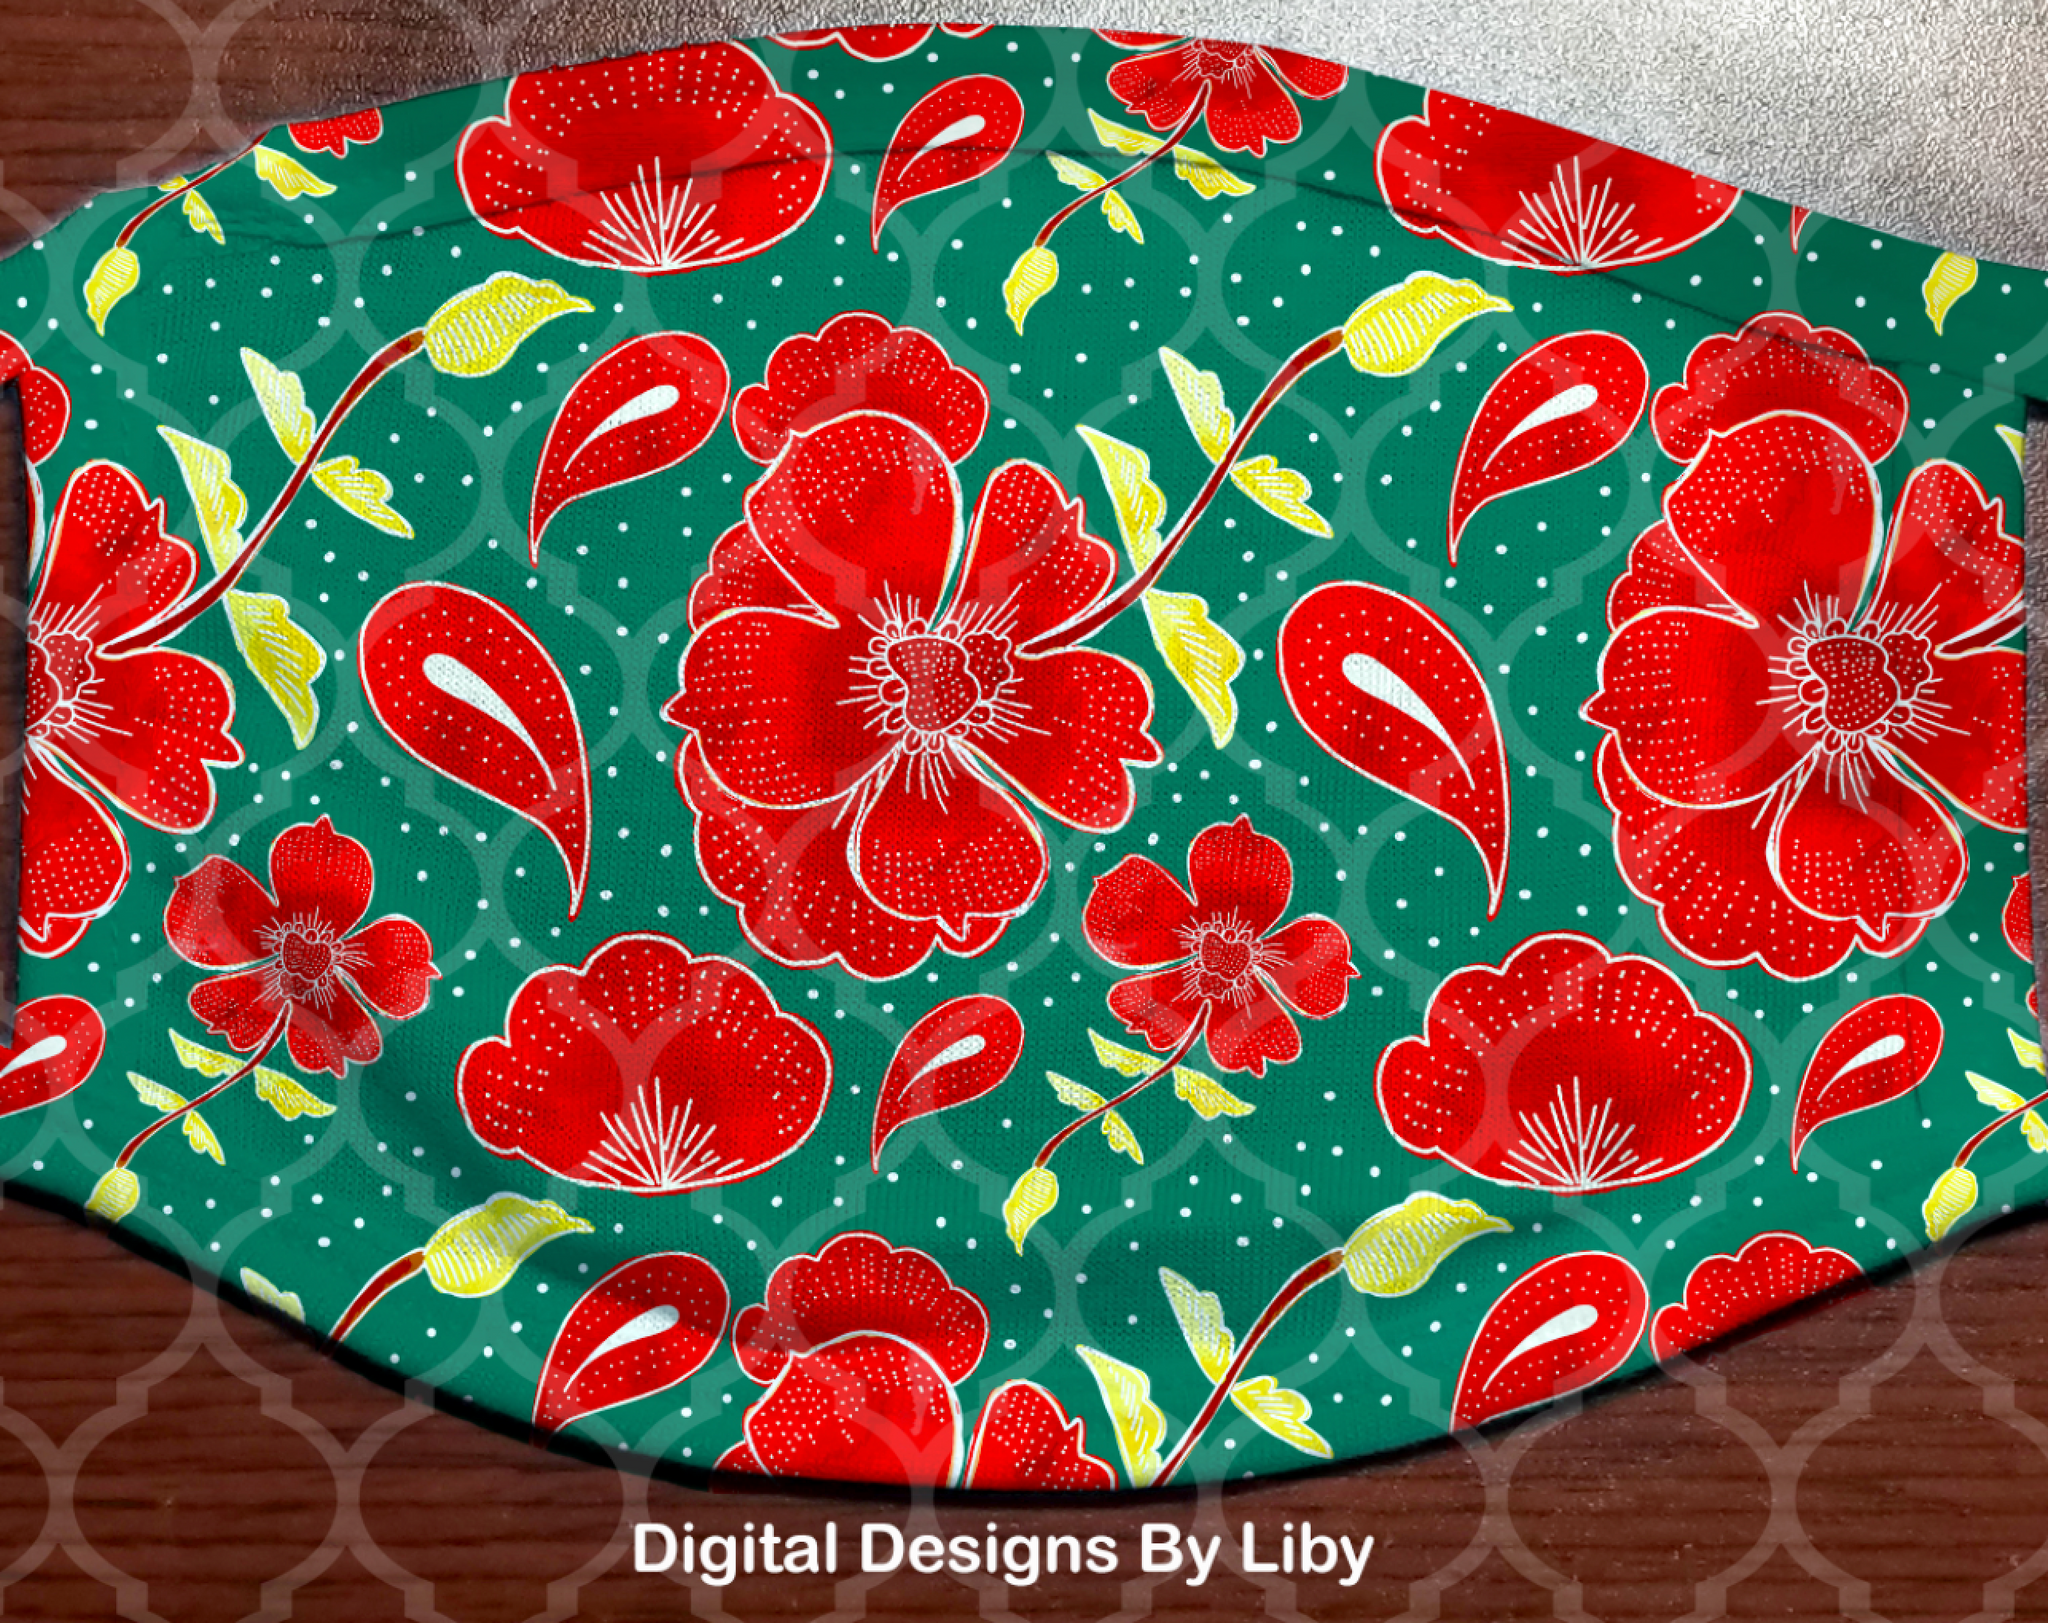 FLORAL POPPIES IN GREEN (Full & Center Designs)